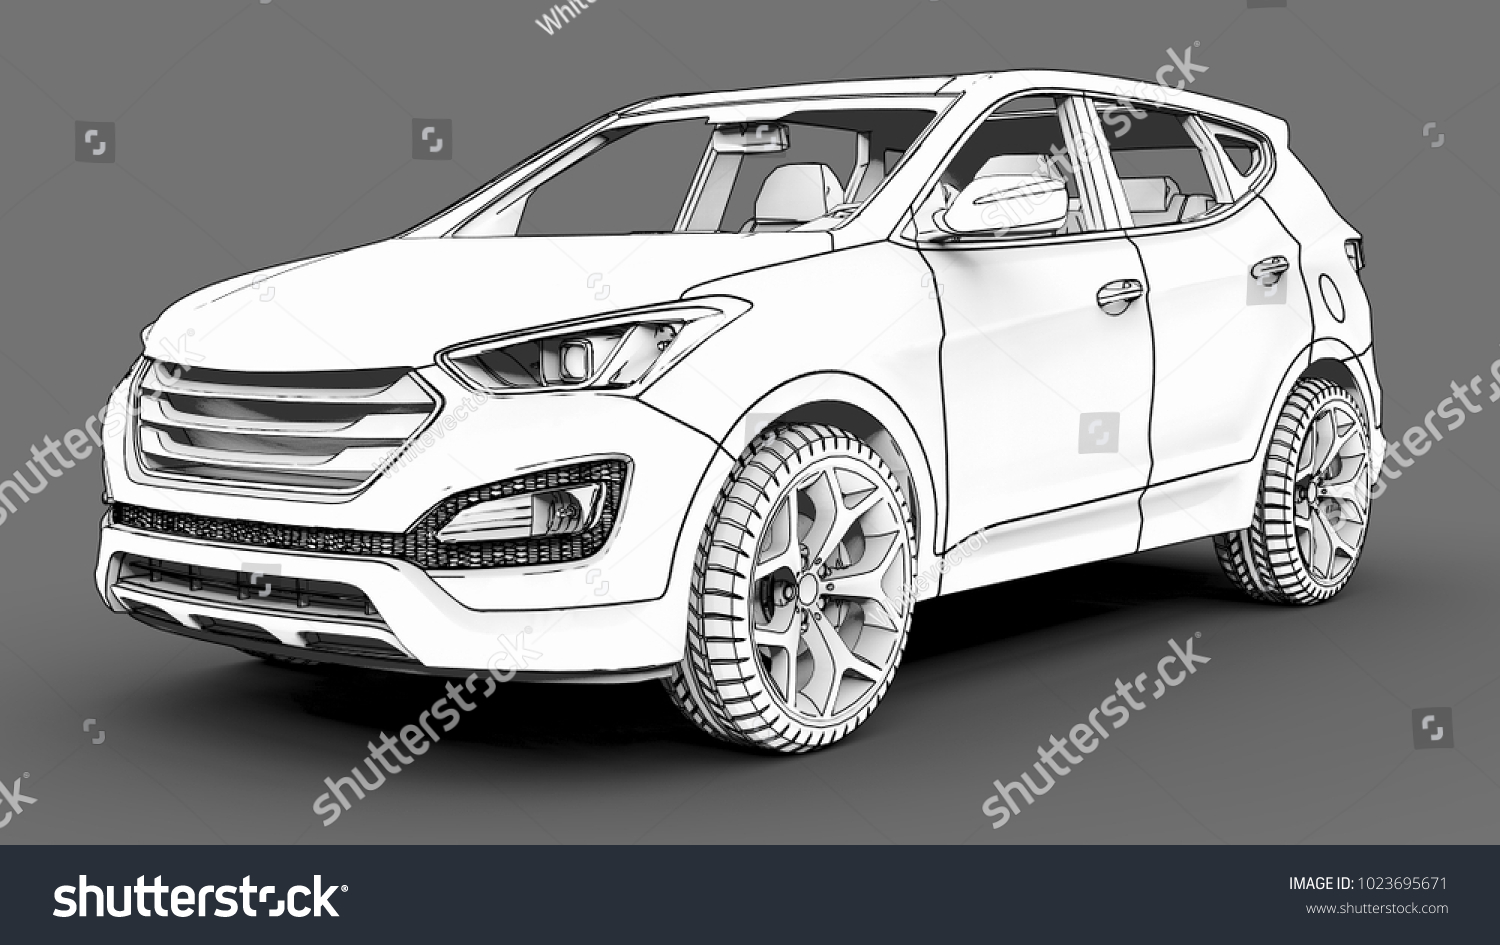 Compact City Crossover White Color On Stock Illustration 1023695671 Schematic A Gray Background Monochrome Image With Shadows